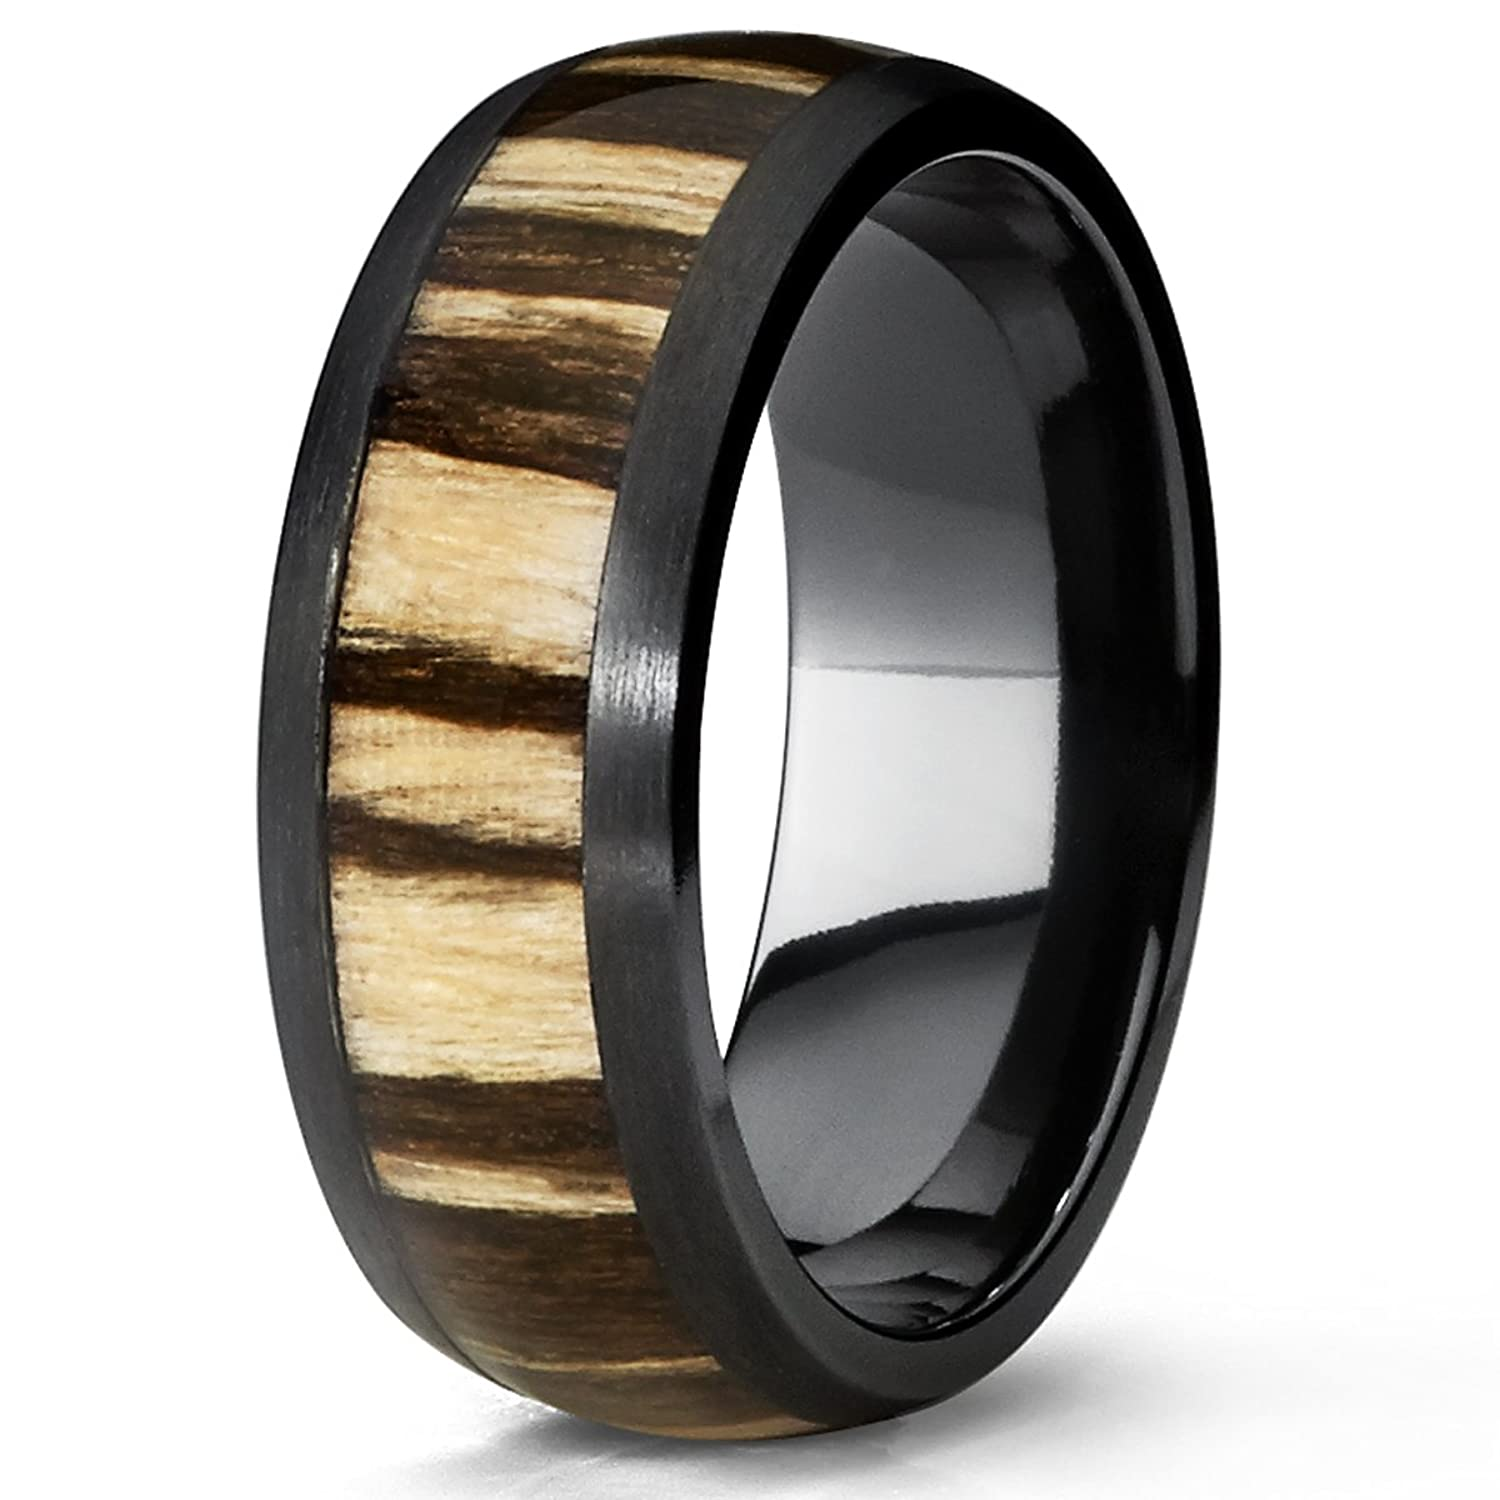 Black Titanium Wedding Band Ring with Real Zebra Wood Inlay 8mm